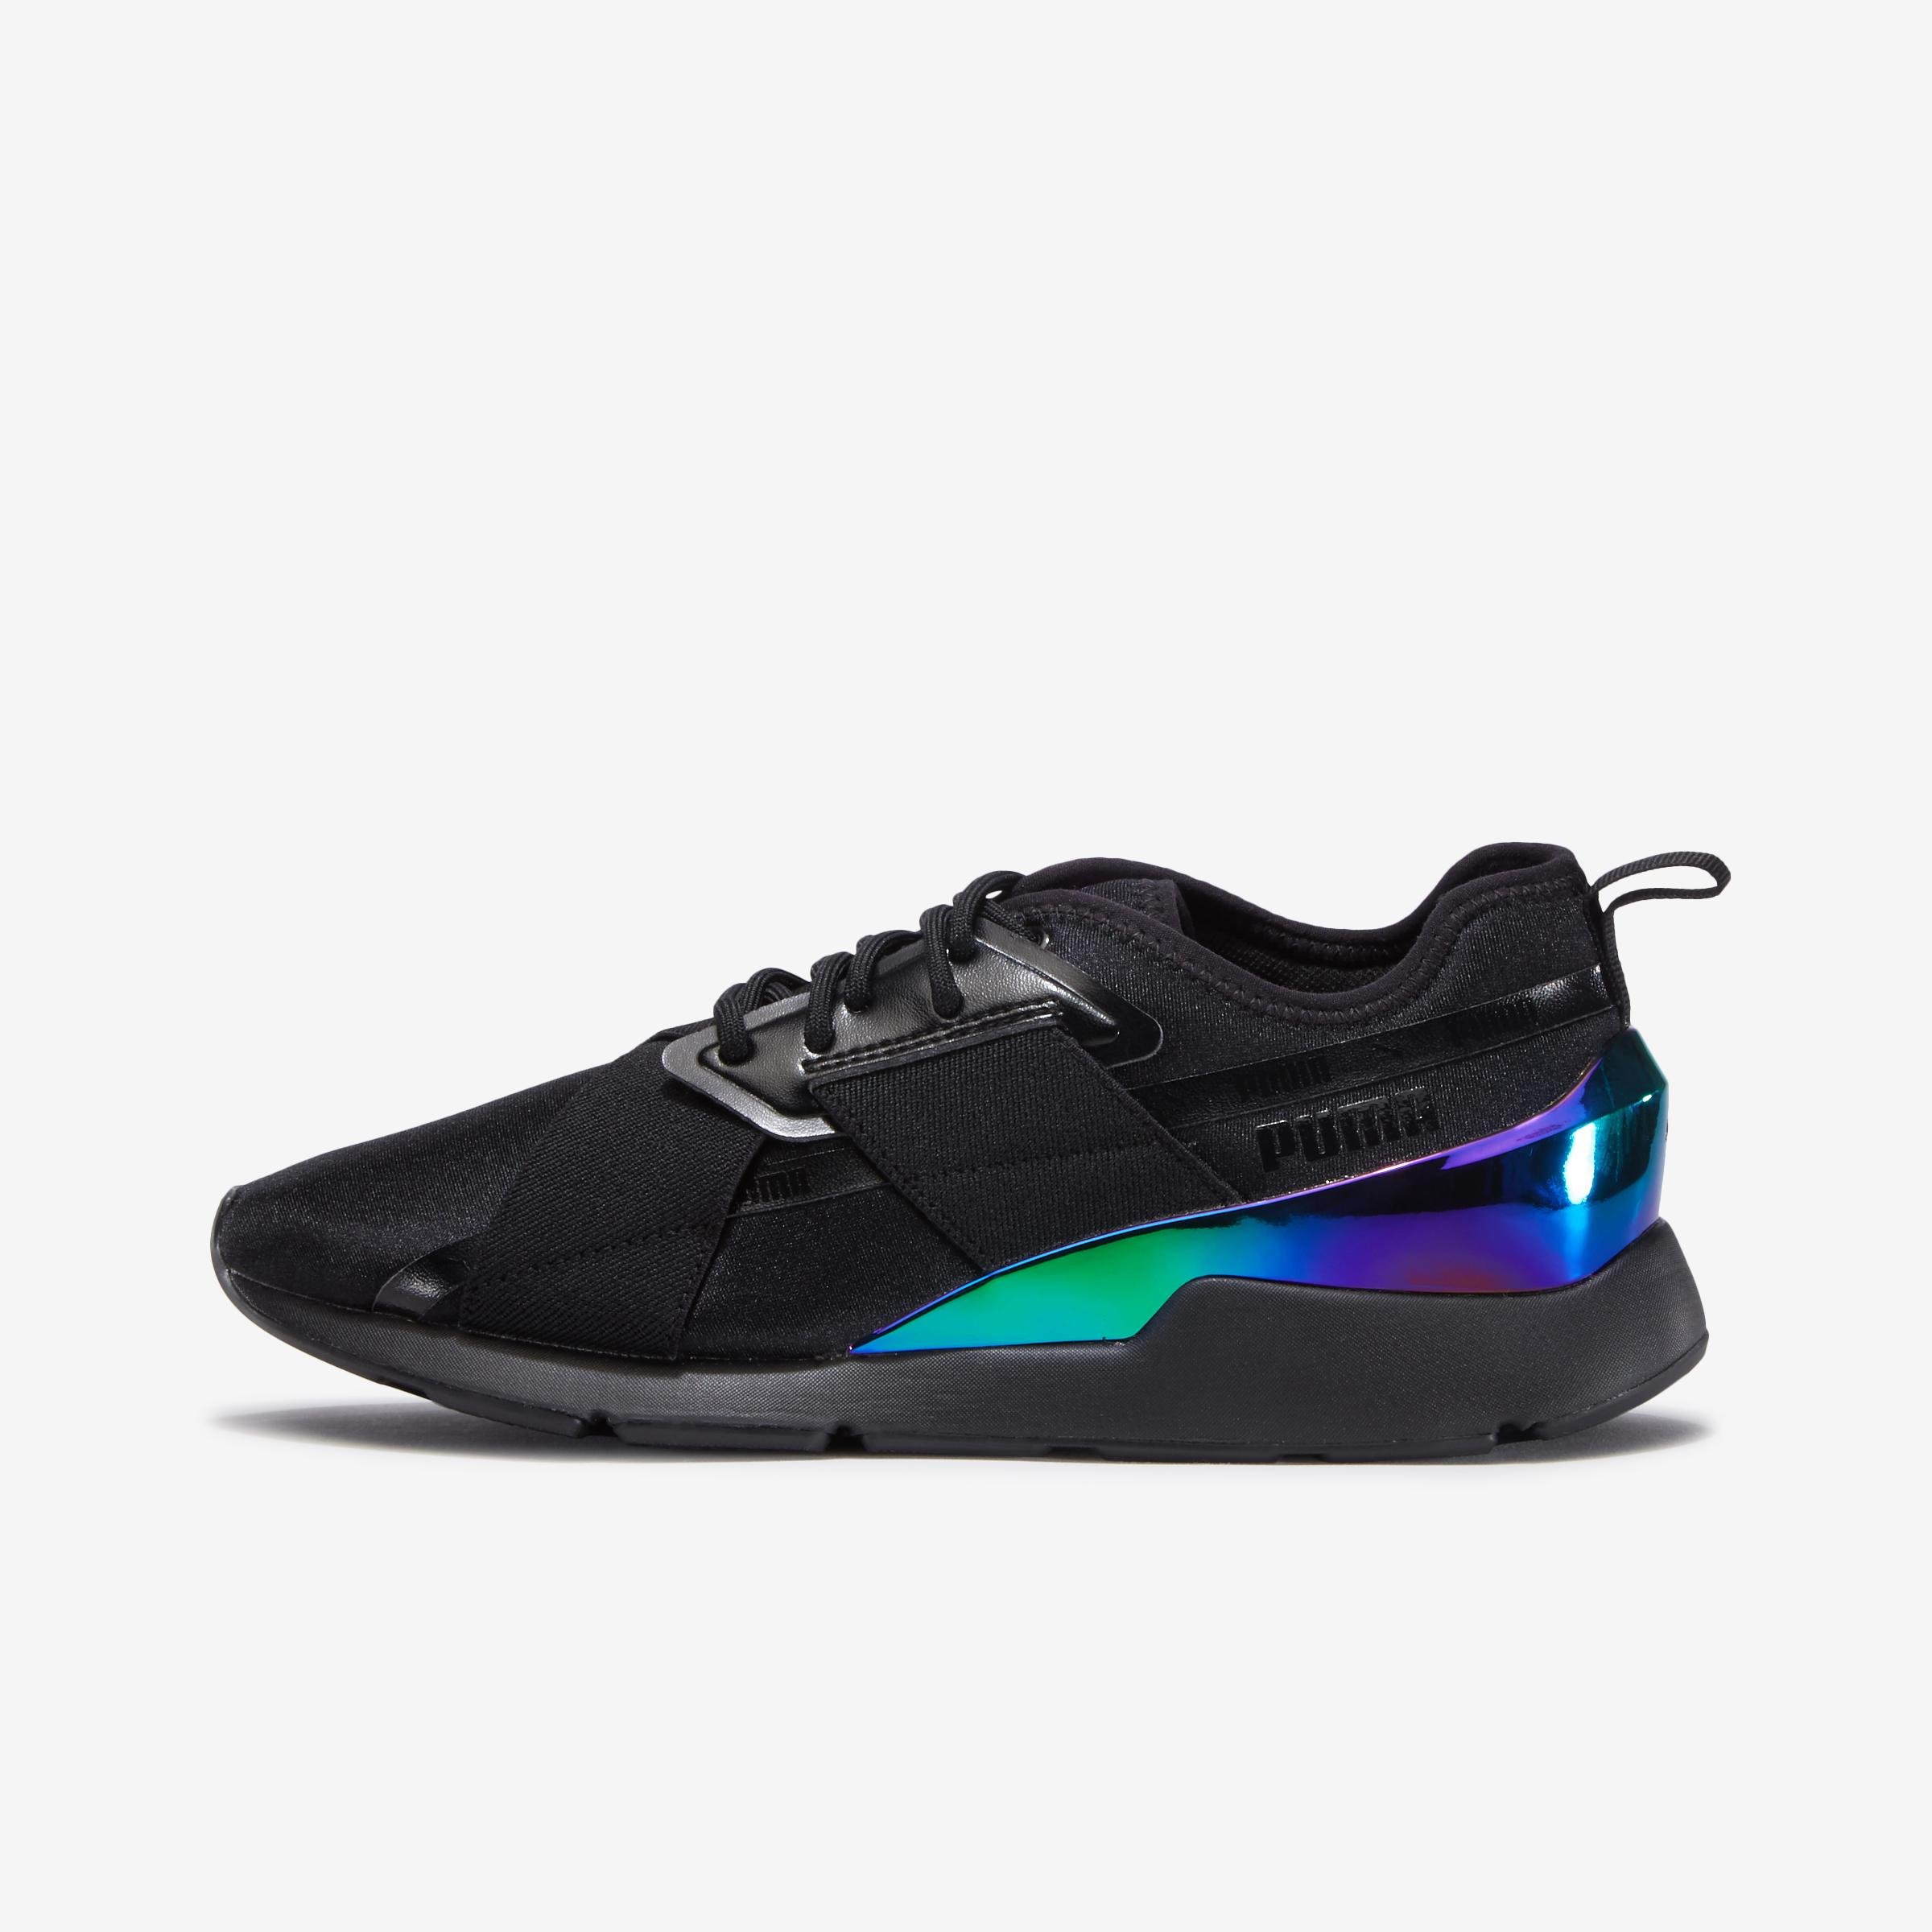 Women's Muse X- 2 Iridescent Shoes